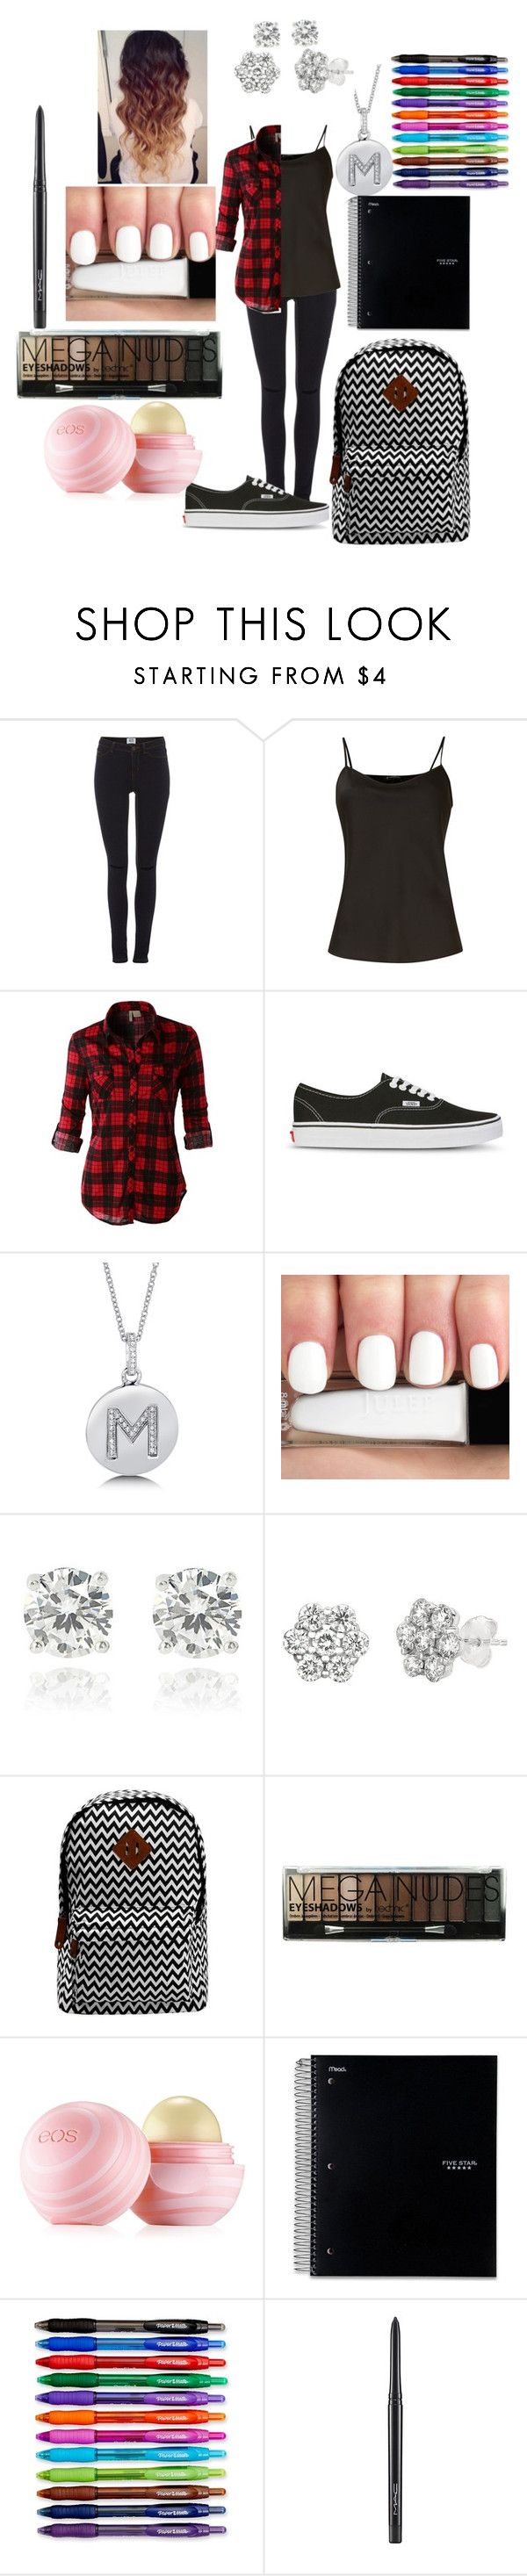 """My first day of High School- freshman year"" by mckinleydallas ❤ liked on Polyvore featuring Vero Moda, Untold, LE3NO, Vans, BERRICLE, The Limited, Lord & Taylor, Boohoo, Eos and Paper Mate"